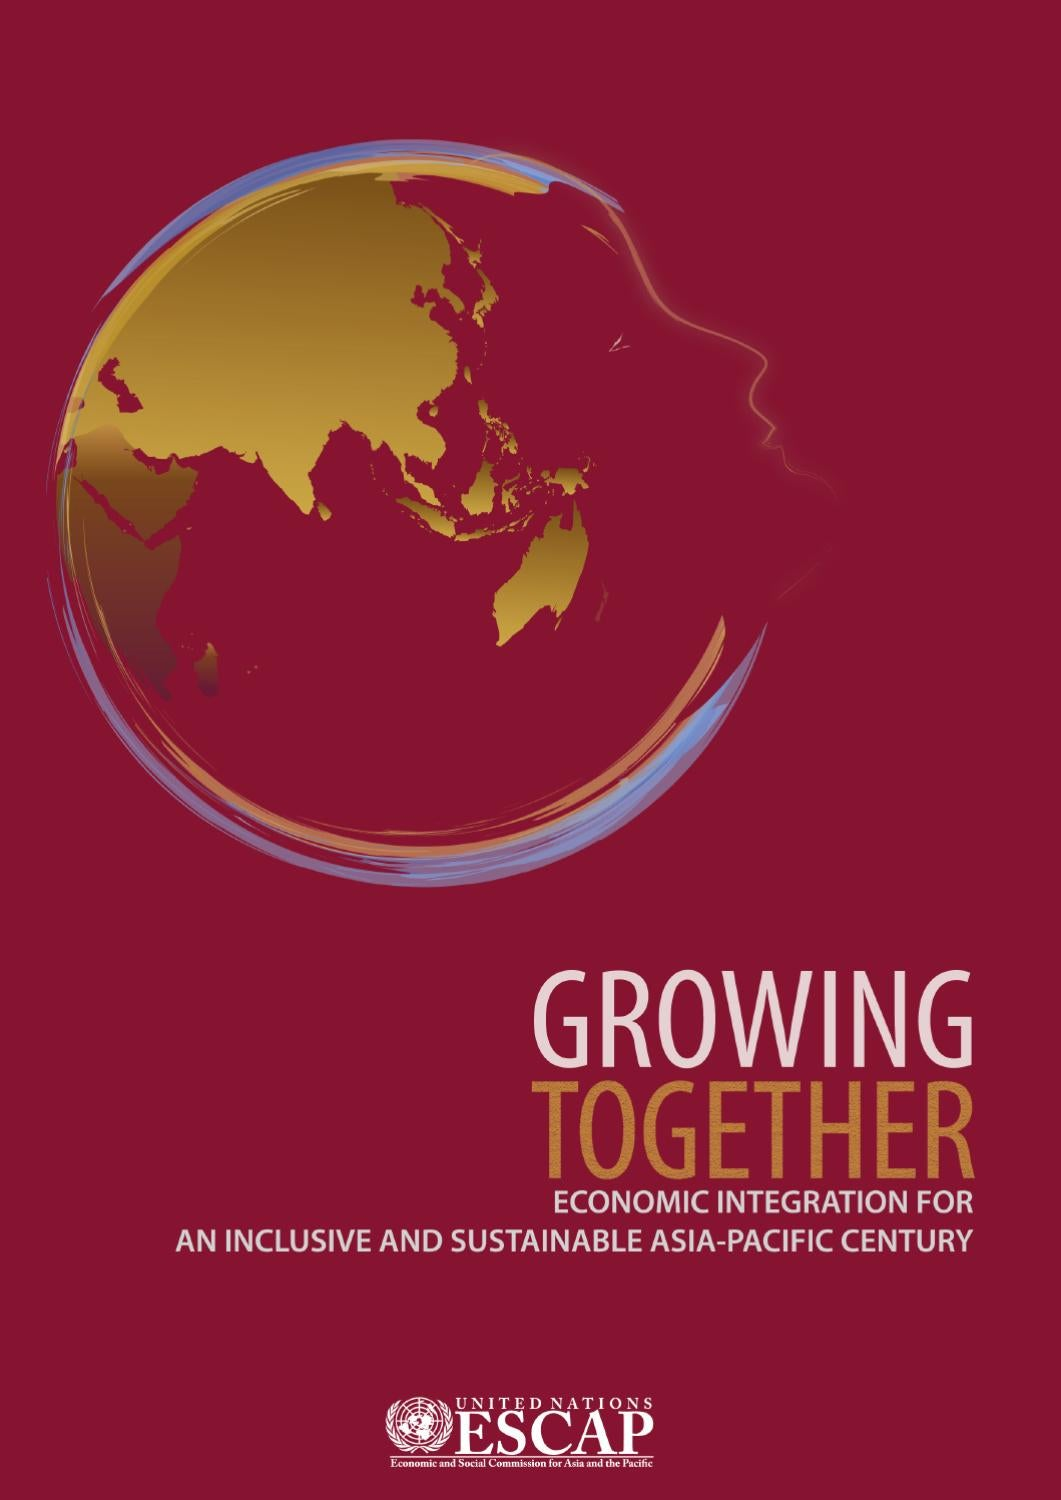 Growing ther by United Nations ESCAP - issuu on